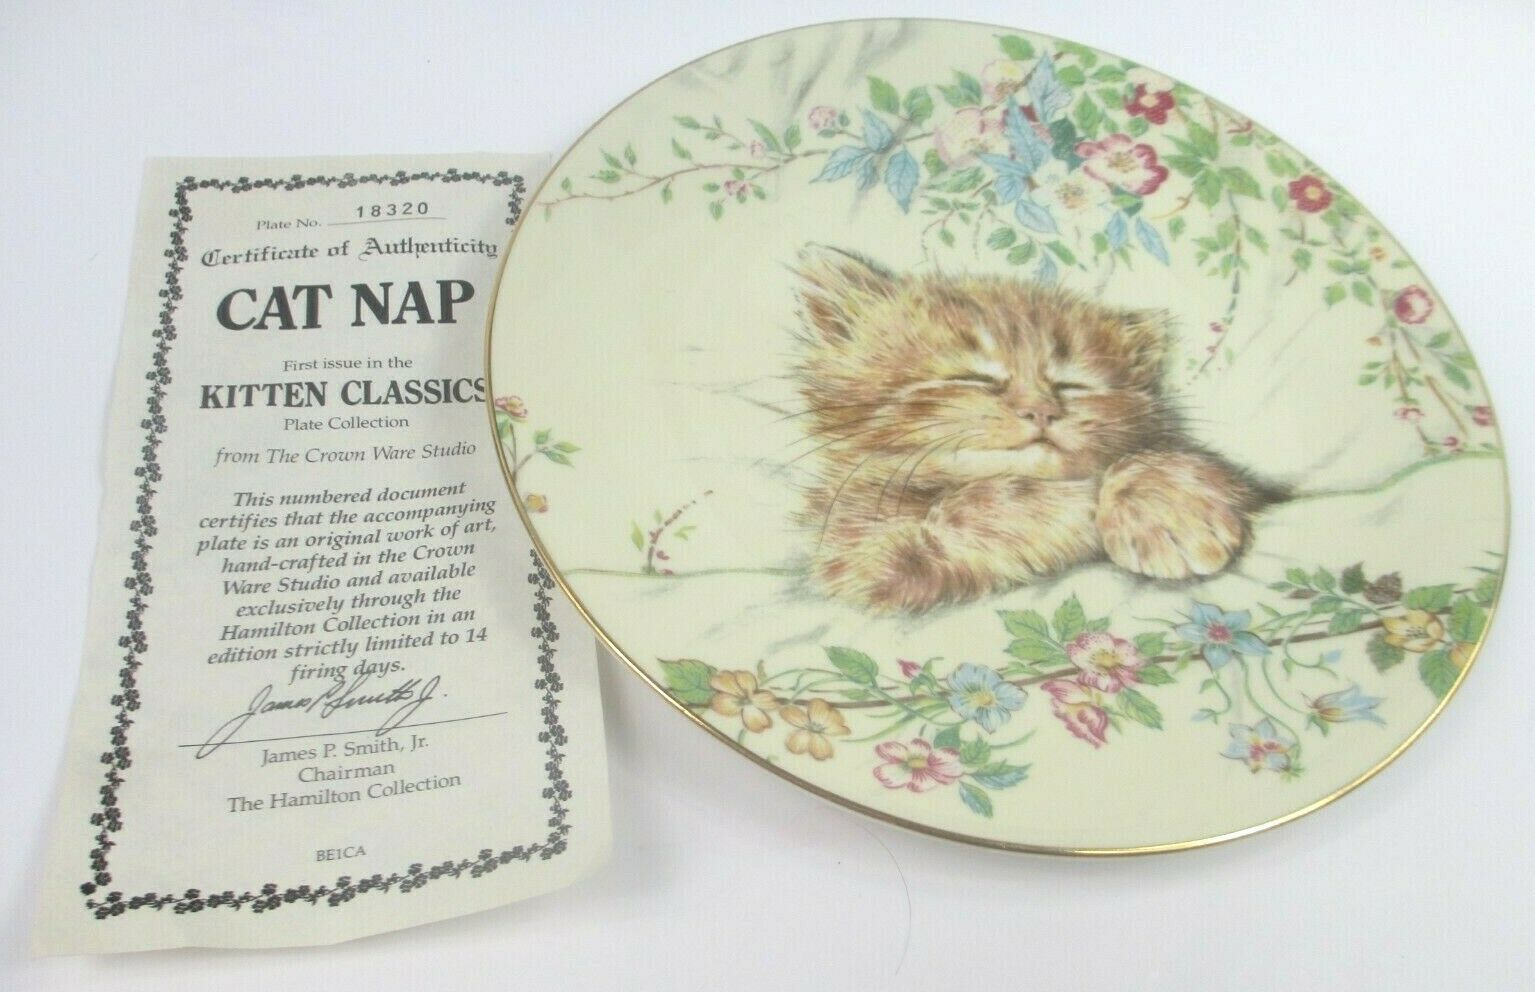 Royal Worcester Crown Ware LITTLE RASCAL KITTEN CLASSICS Cat Collectors Plate